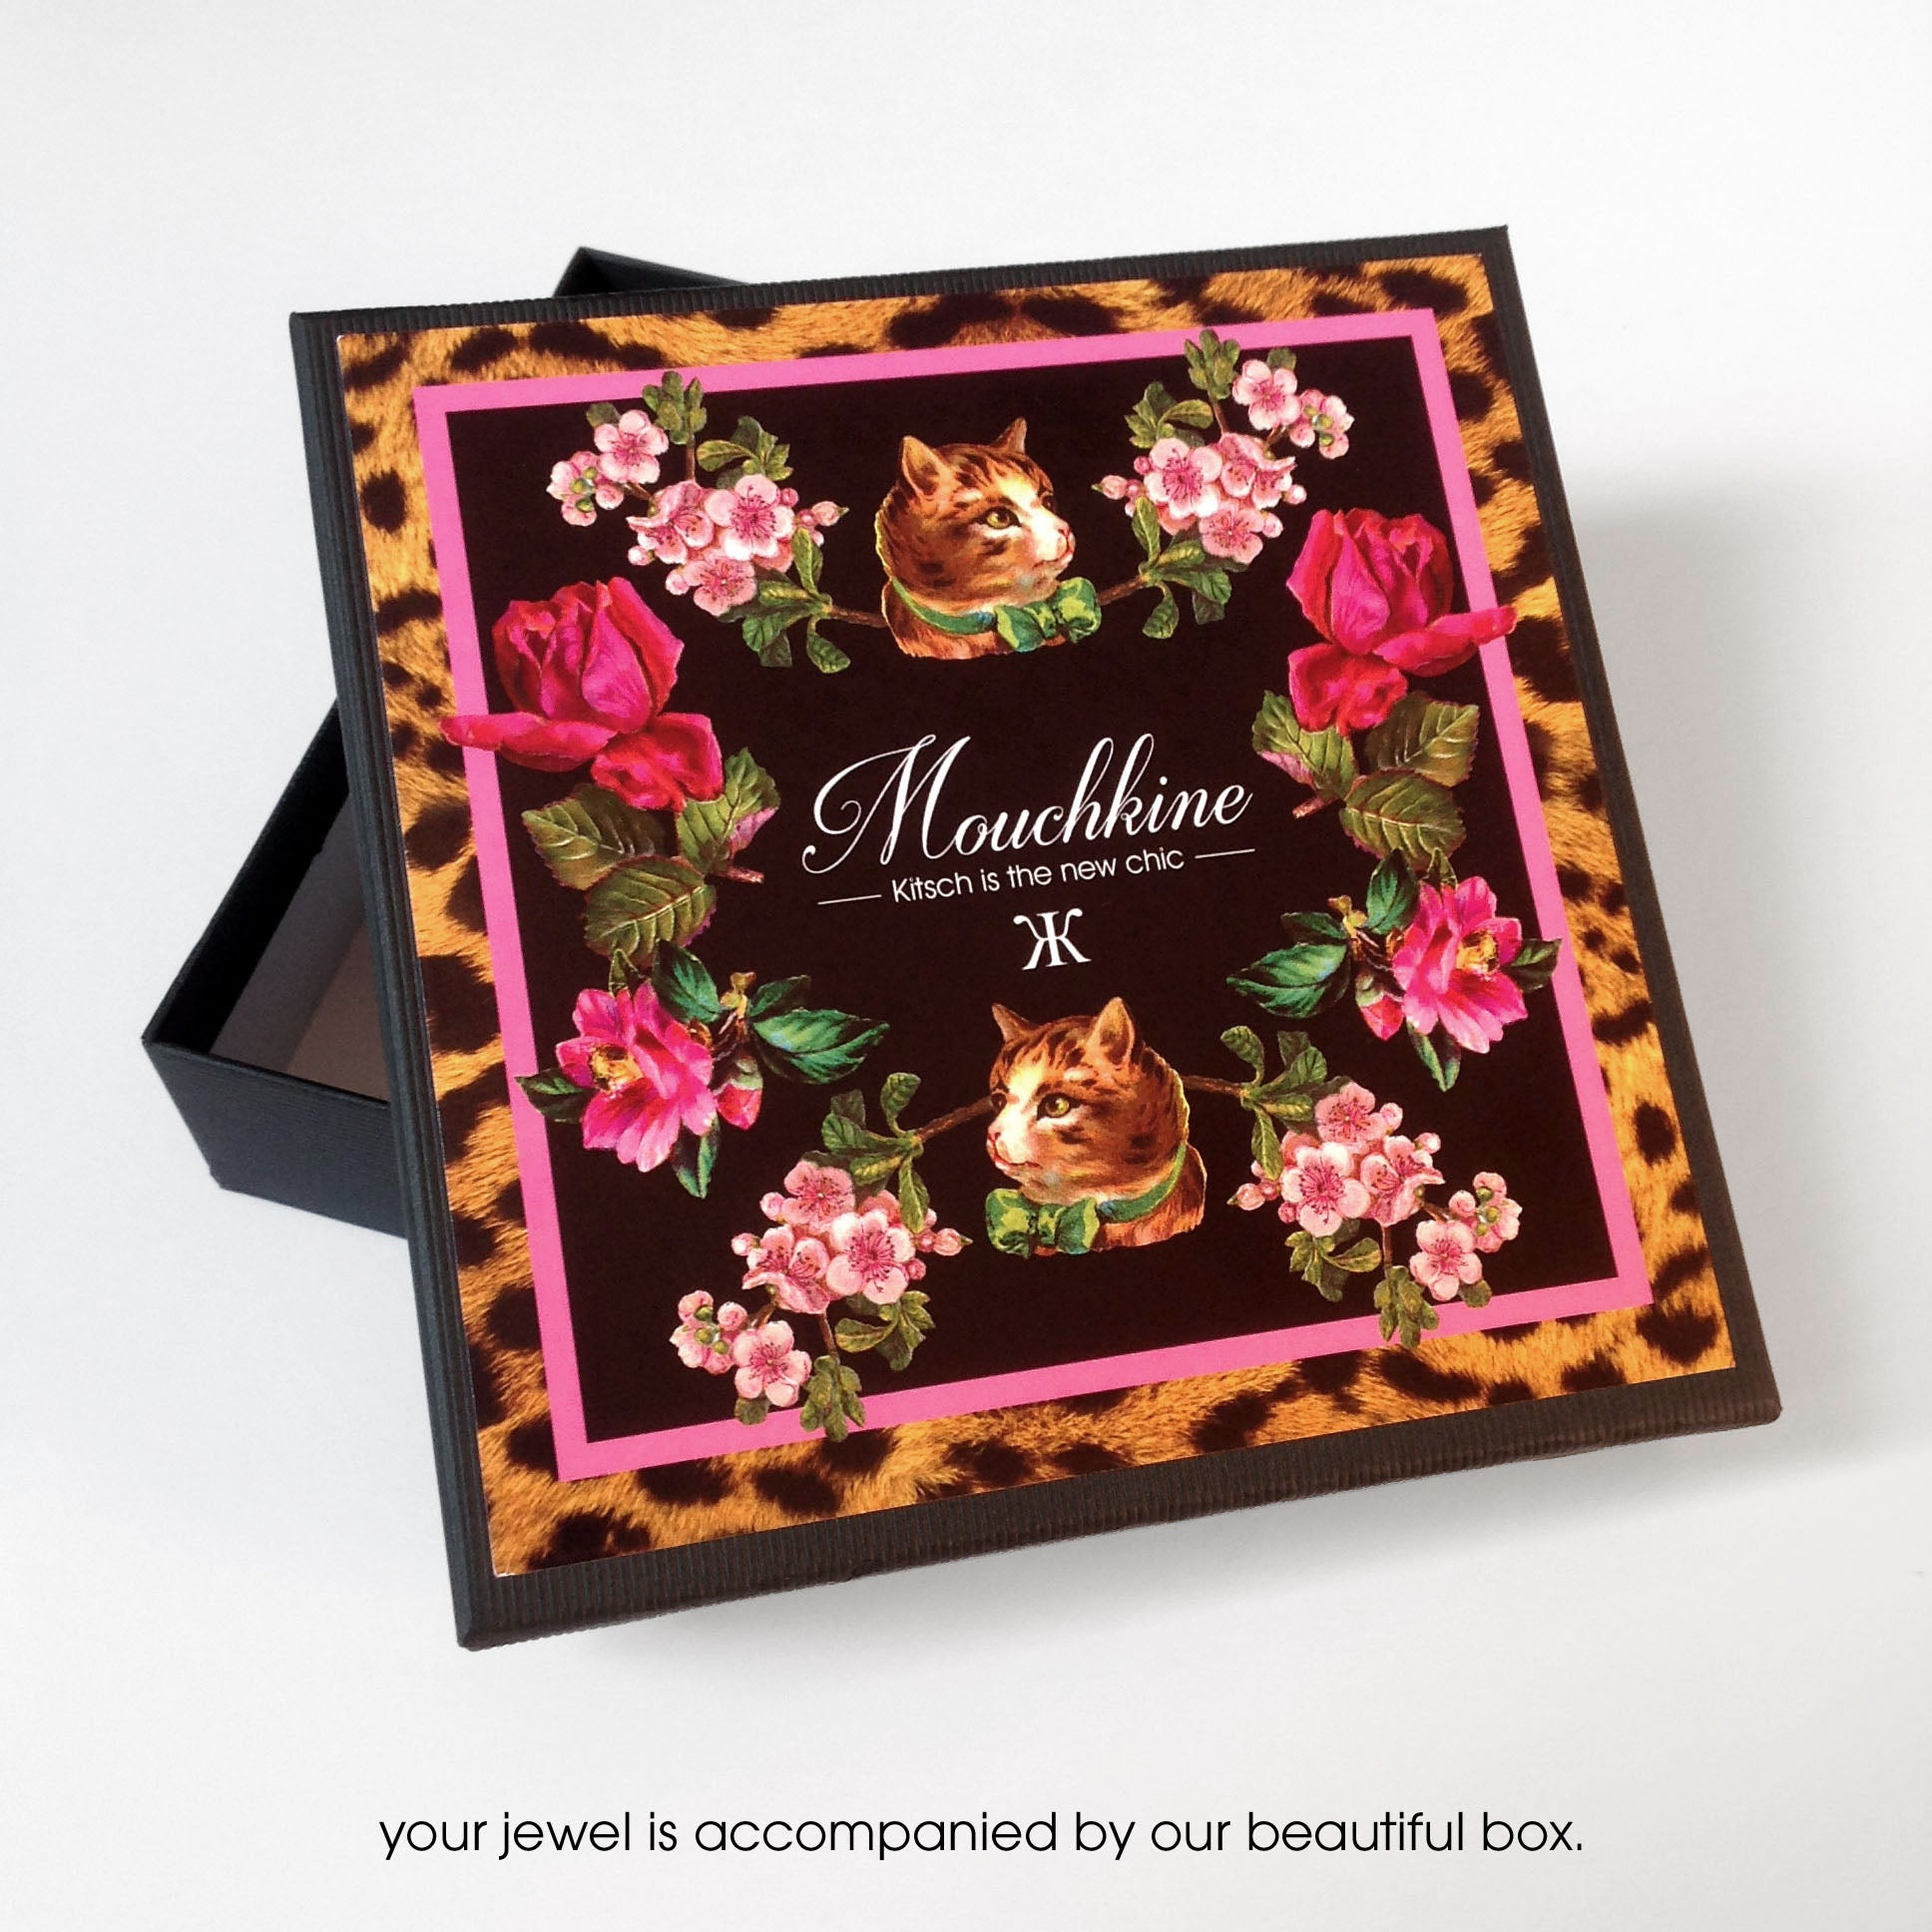 mouchkine jewelry luxury chic packaging